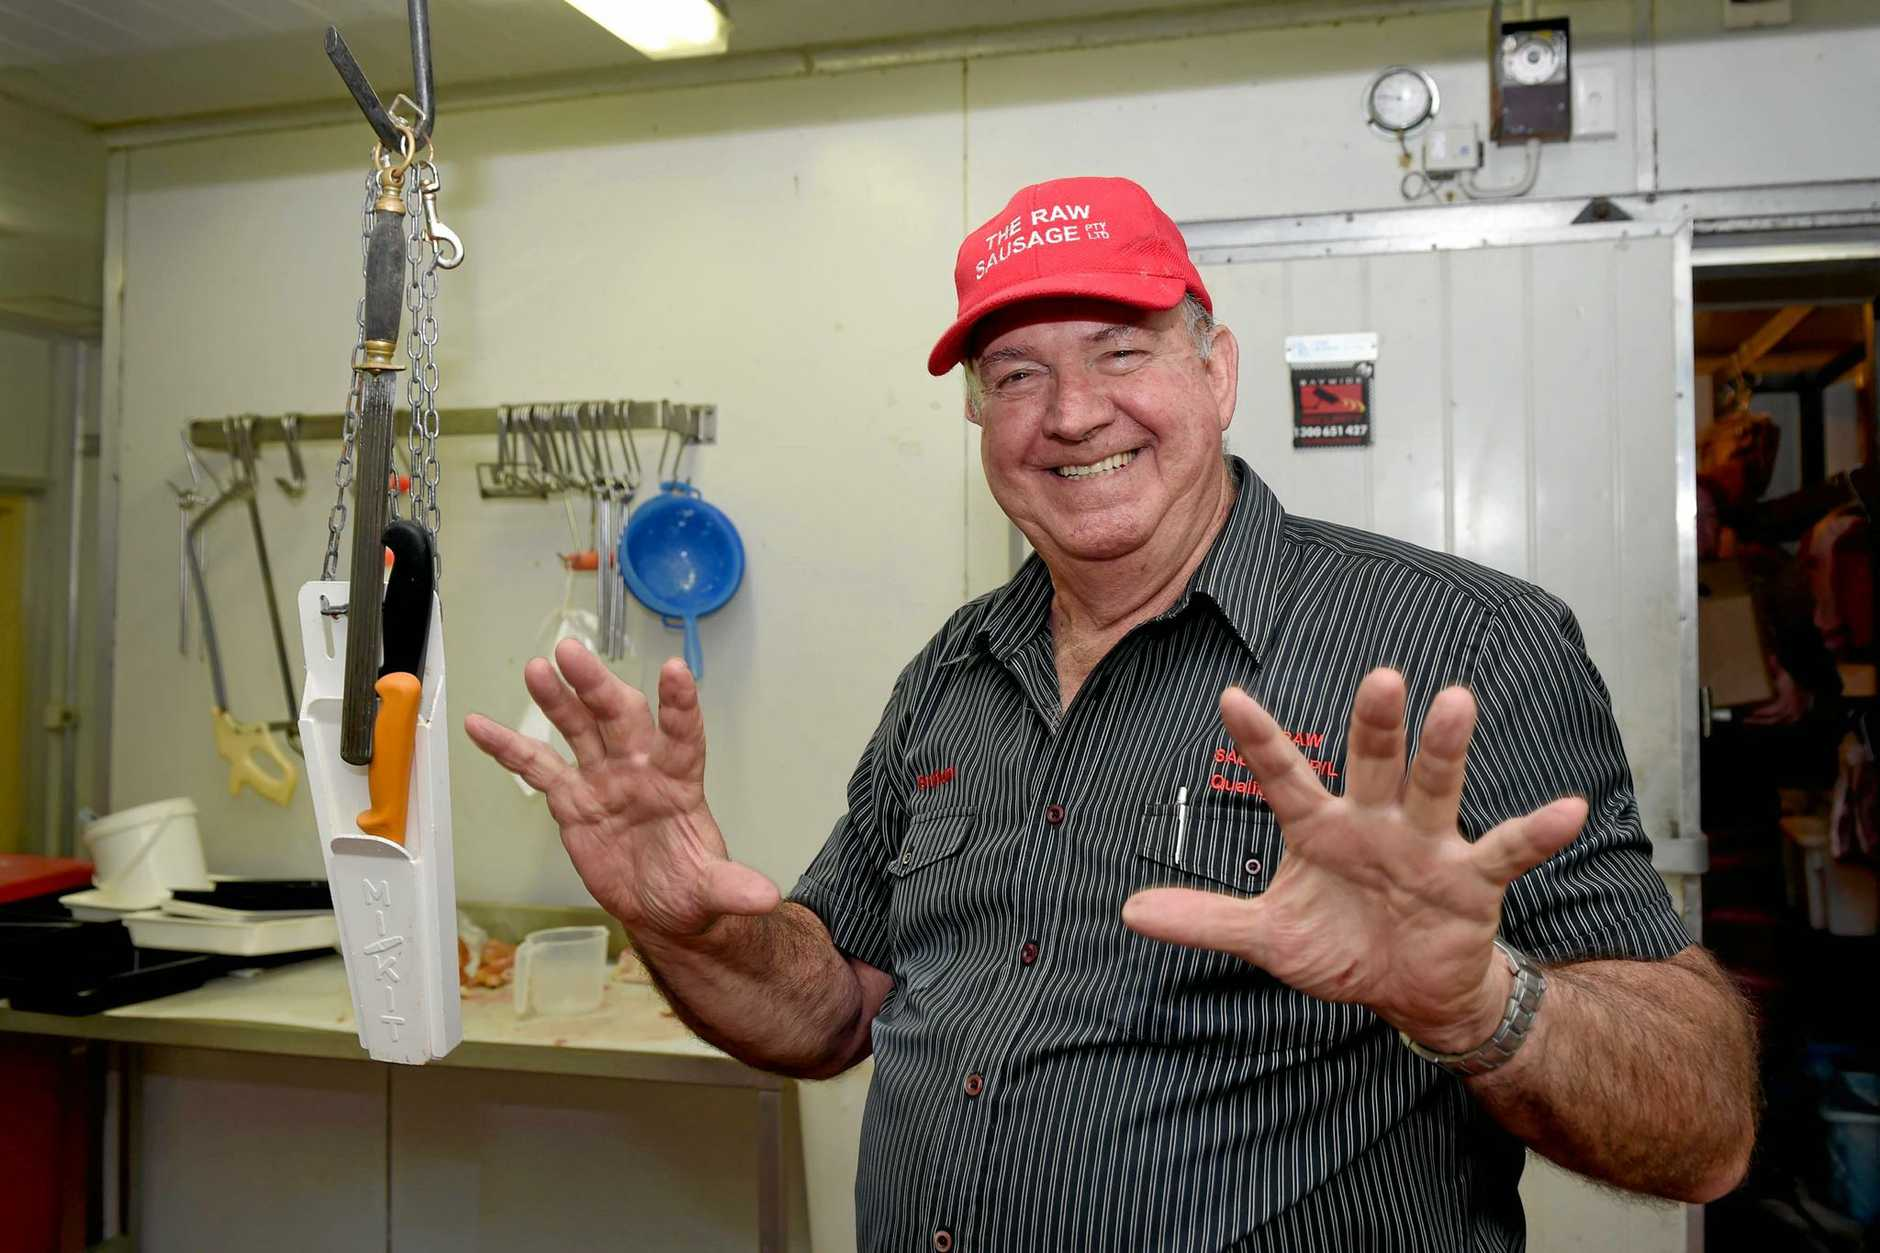 The Raw Sausage Butchery - Graham Zahl has had over 50 years ecperience ad a butcher and demonstrates that he still has all ten fingers.